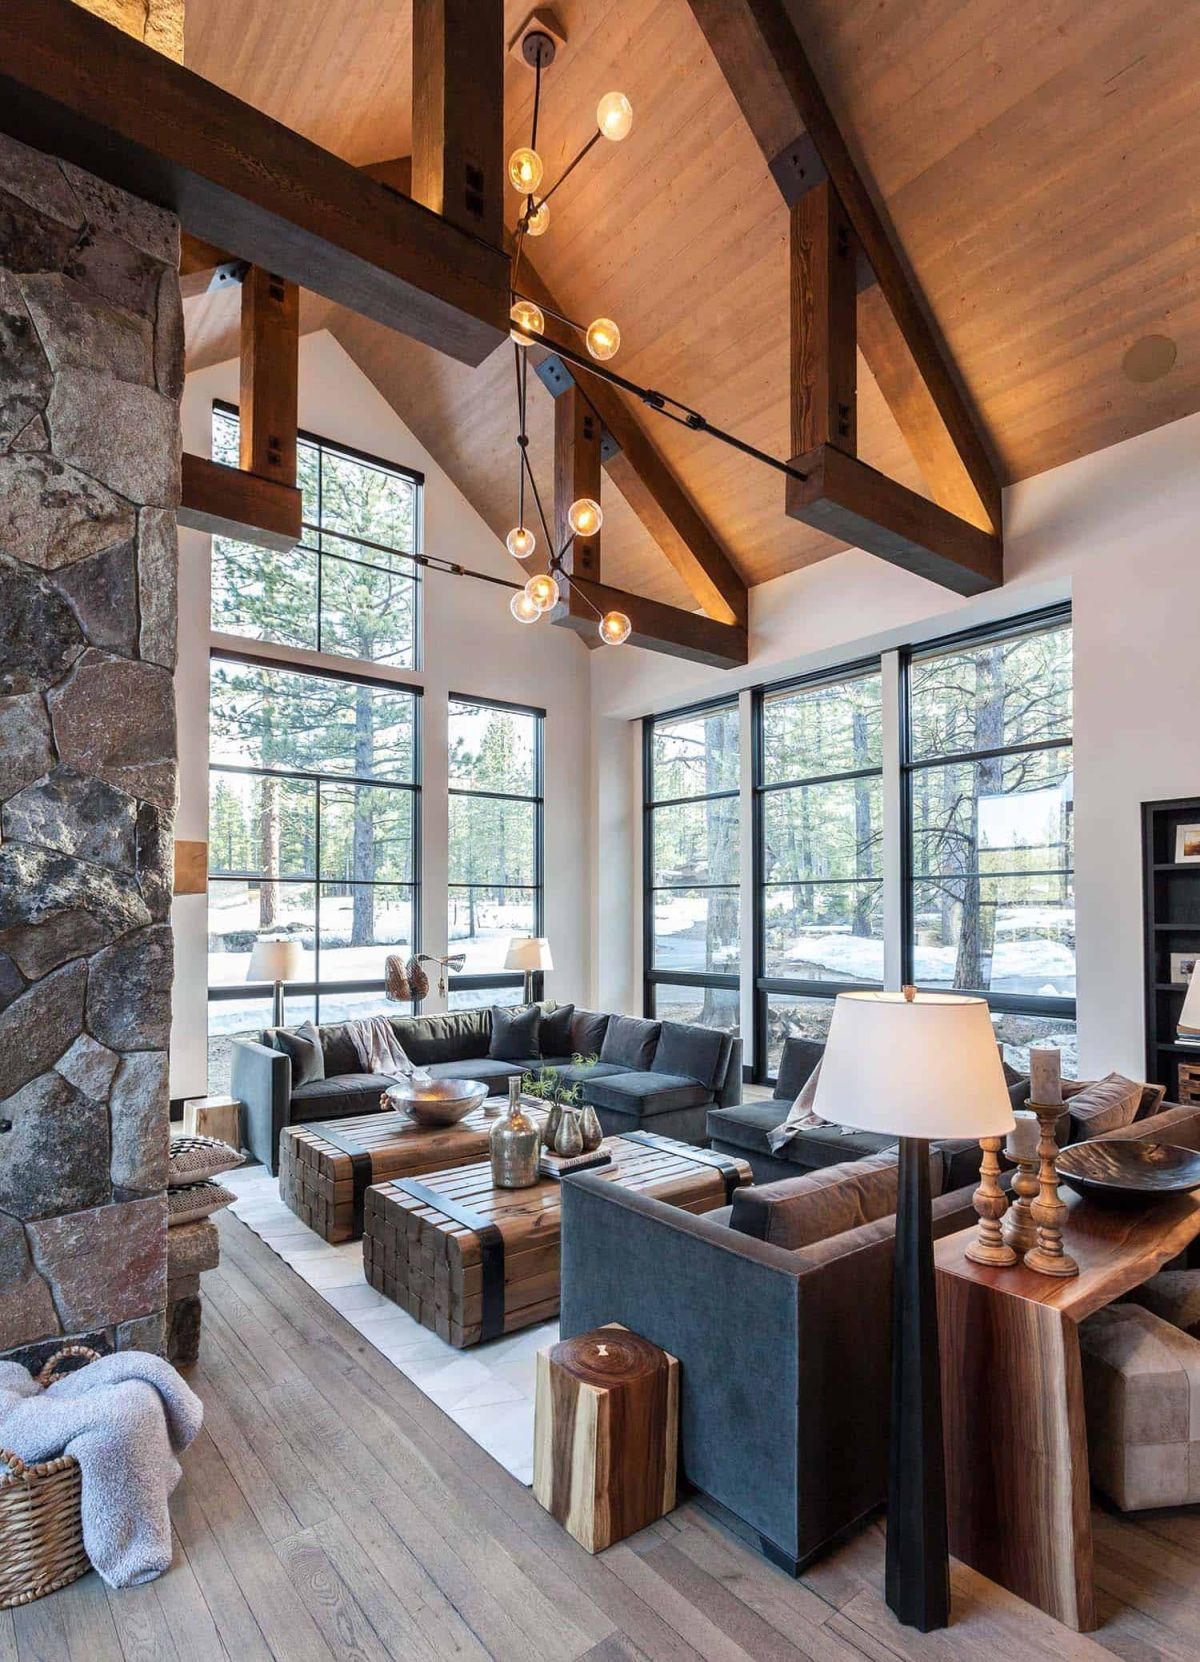 The seating area has comfortable, gray sofas, two wooden coffee tables and stylish lighting fixtures